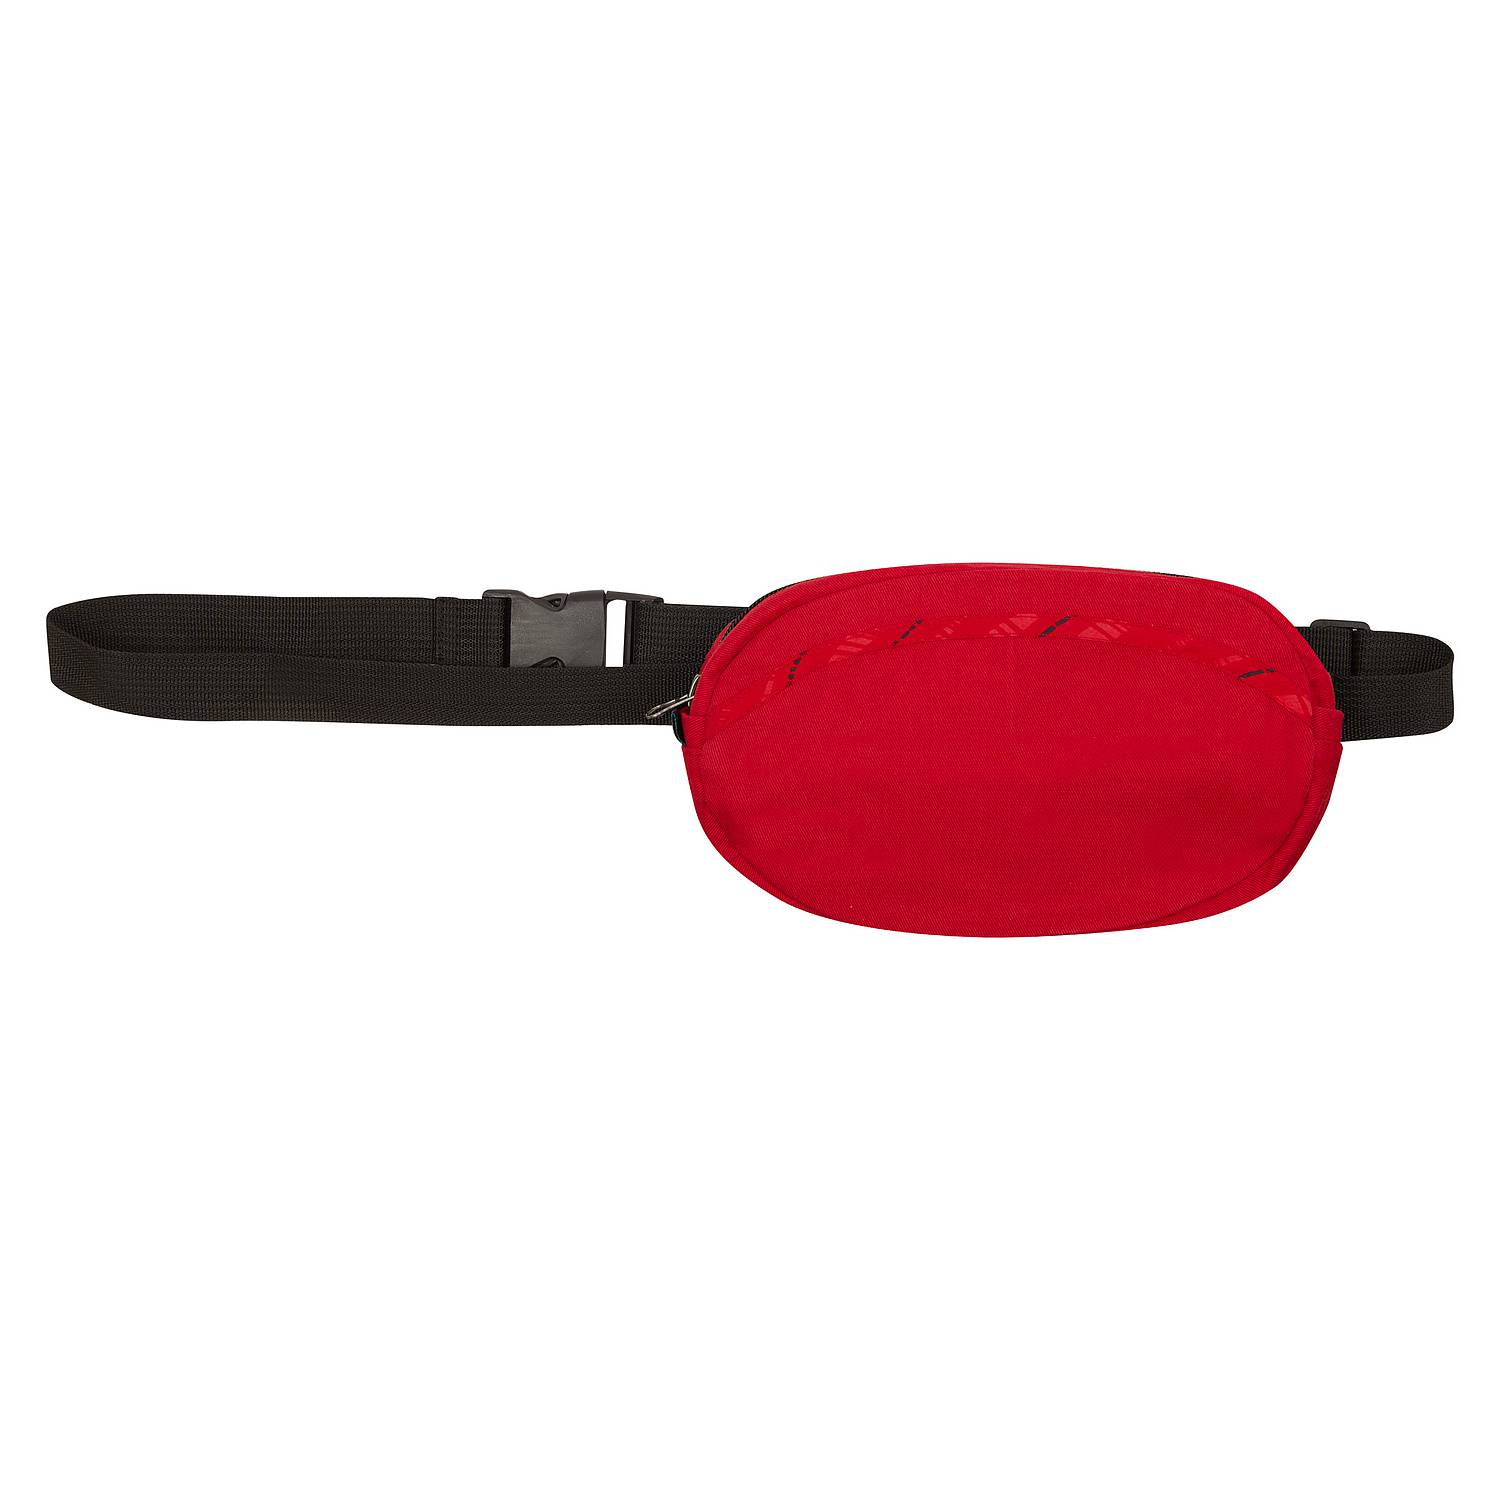 Belt bag Poppy chili